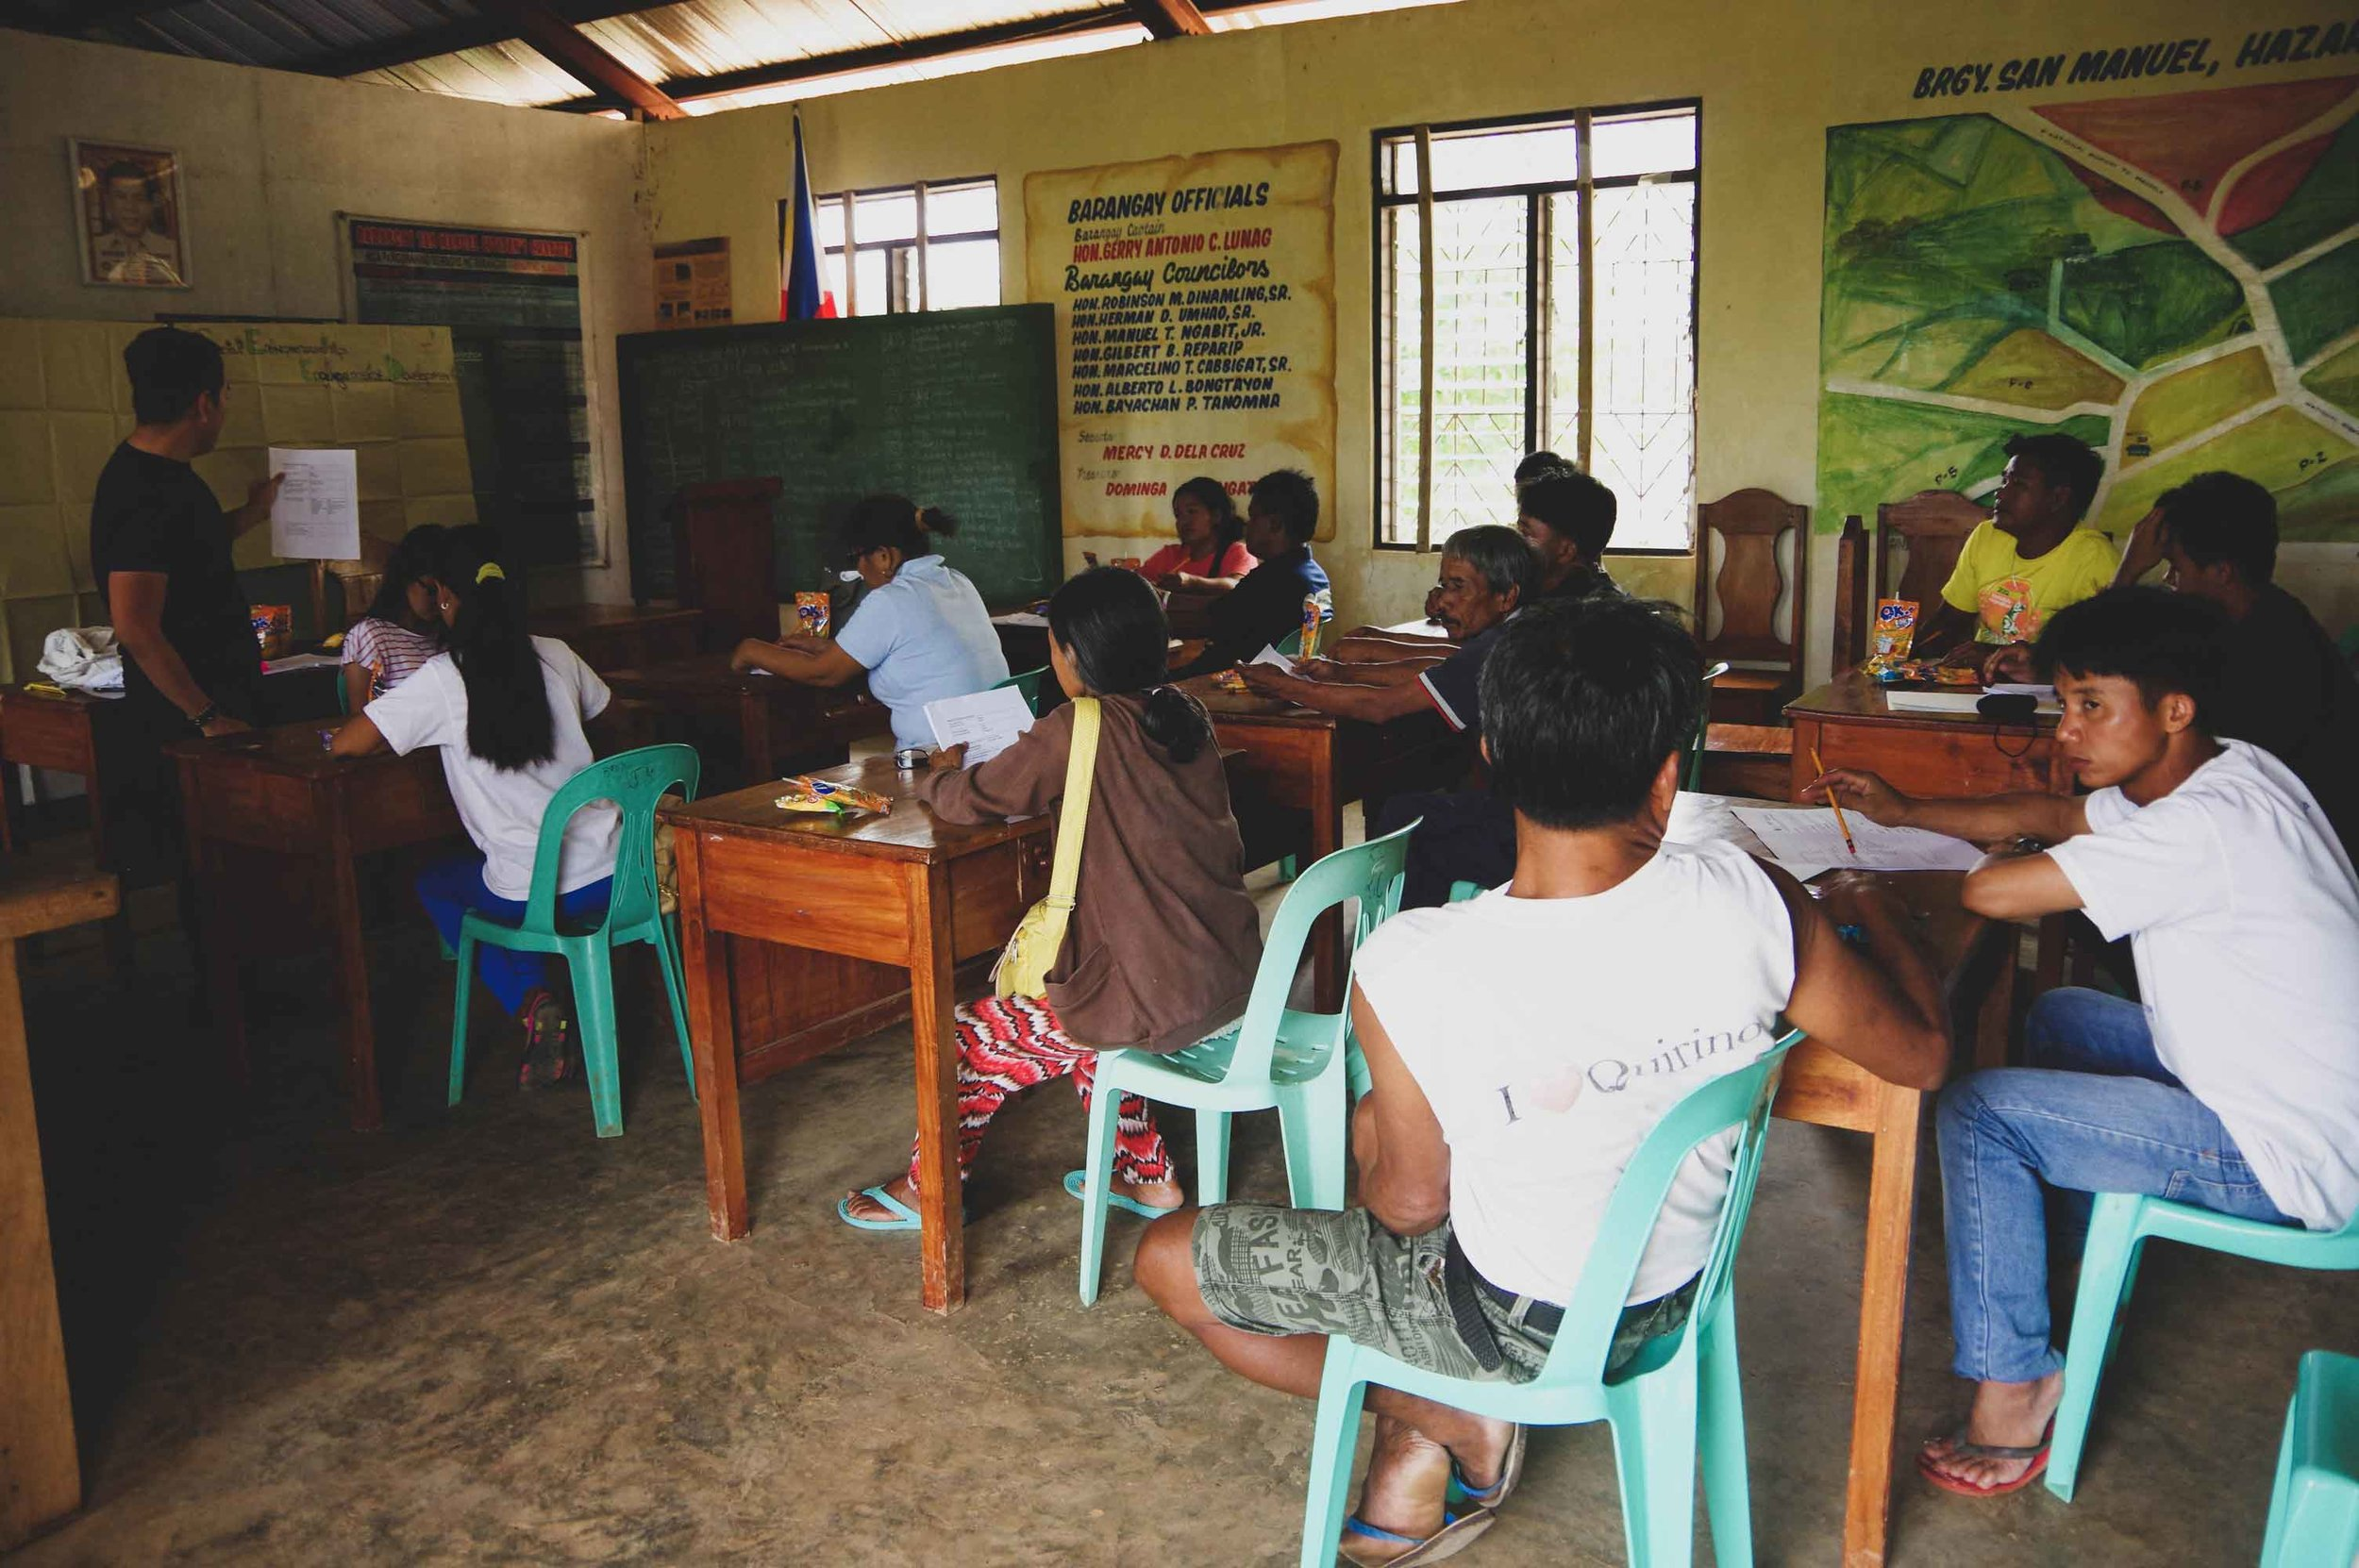 The Impact Hub awareness event at Brgy. San Manuel, Quirino Province.